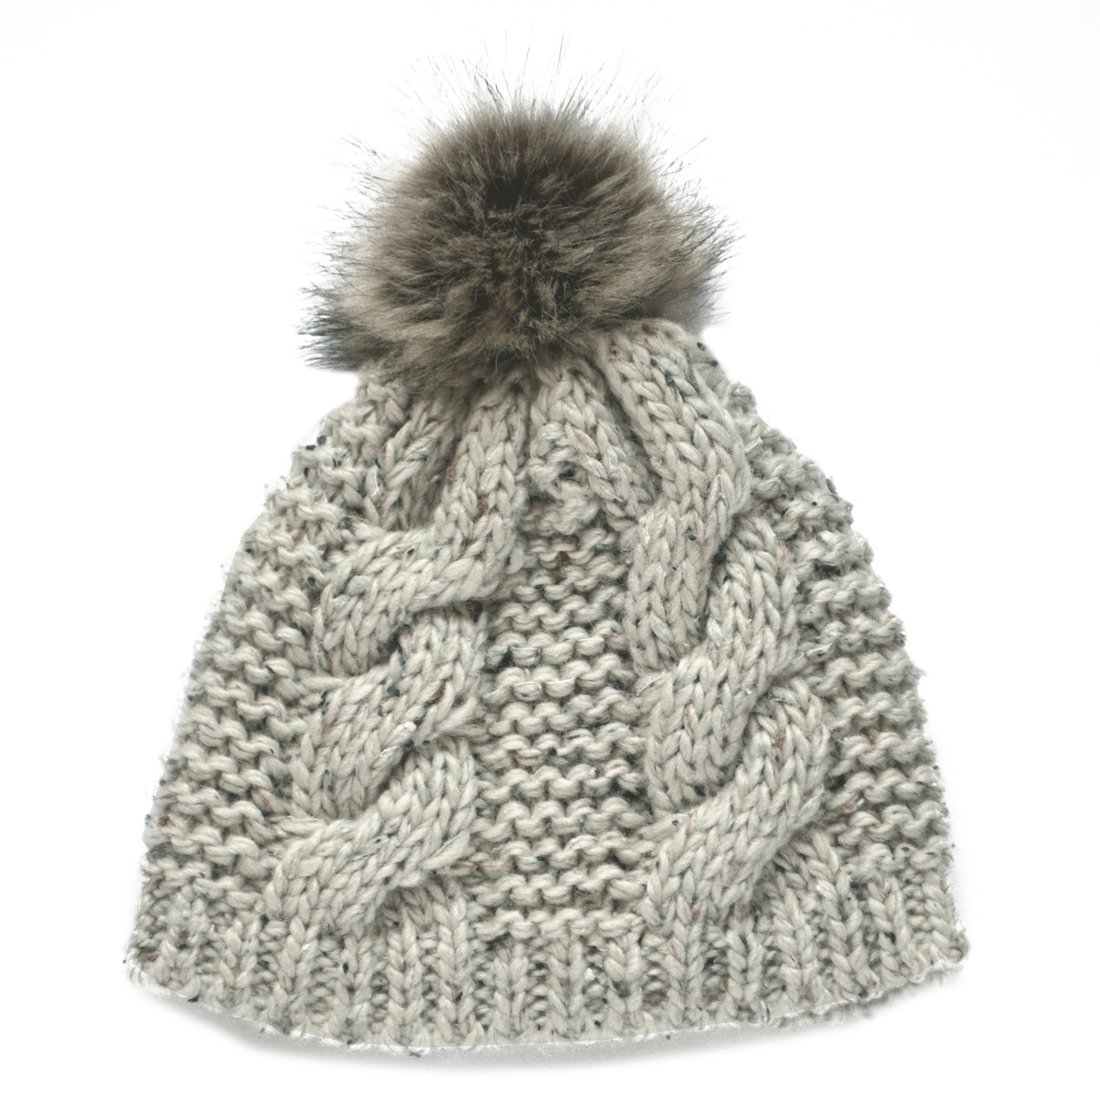 Fur Bobble Knit Hat Ladies Oatmeal Fleck from Ireland Patrick Francis